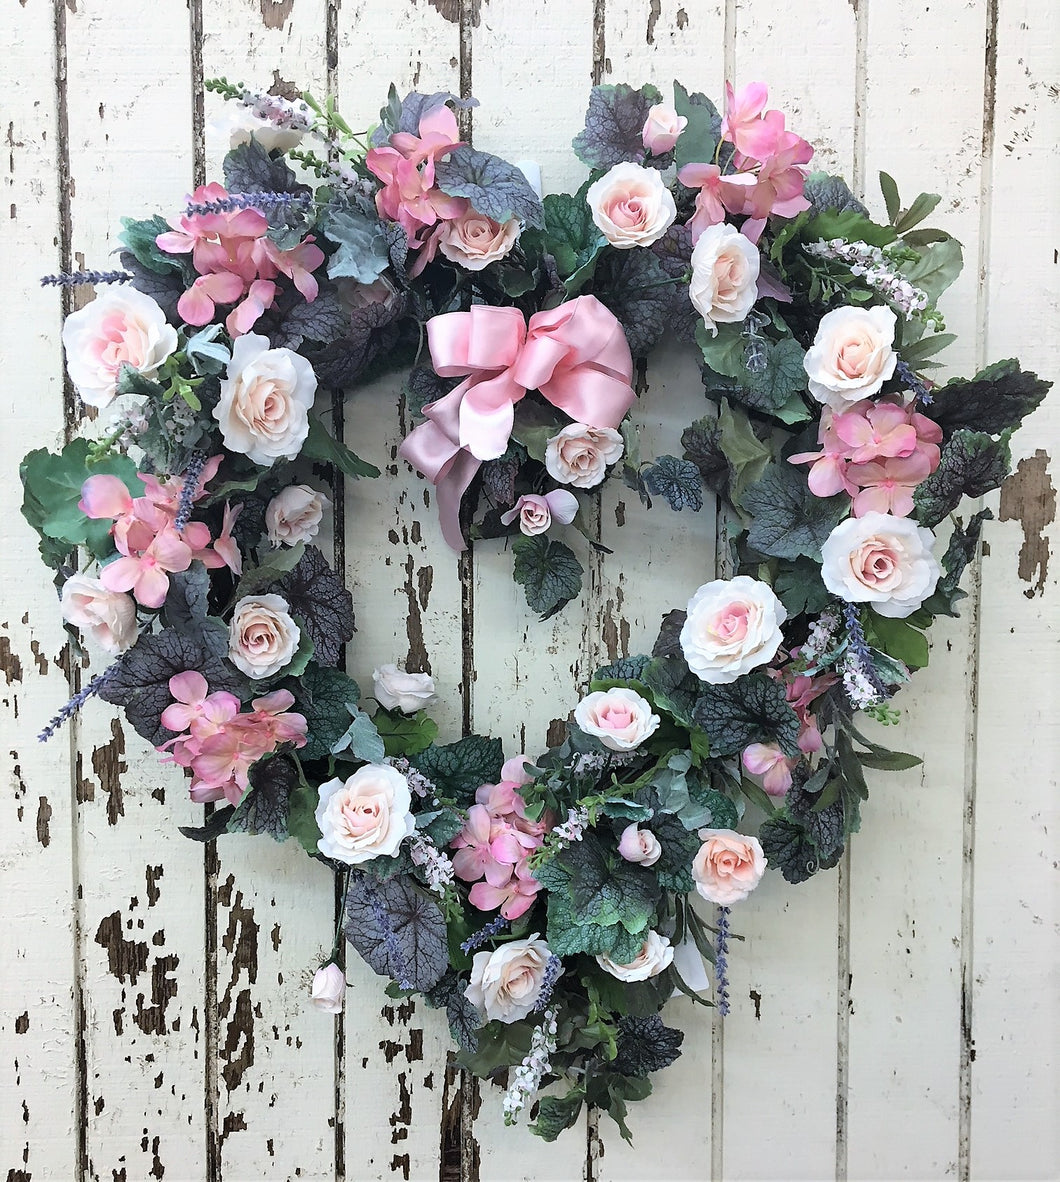 Heart Shaped Pink Valentine's Wreath/Val06 - April's Garden Wreath